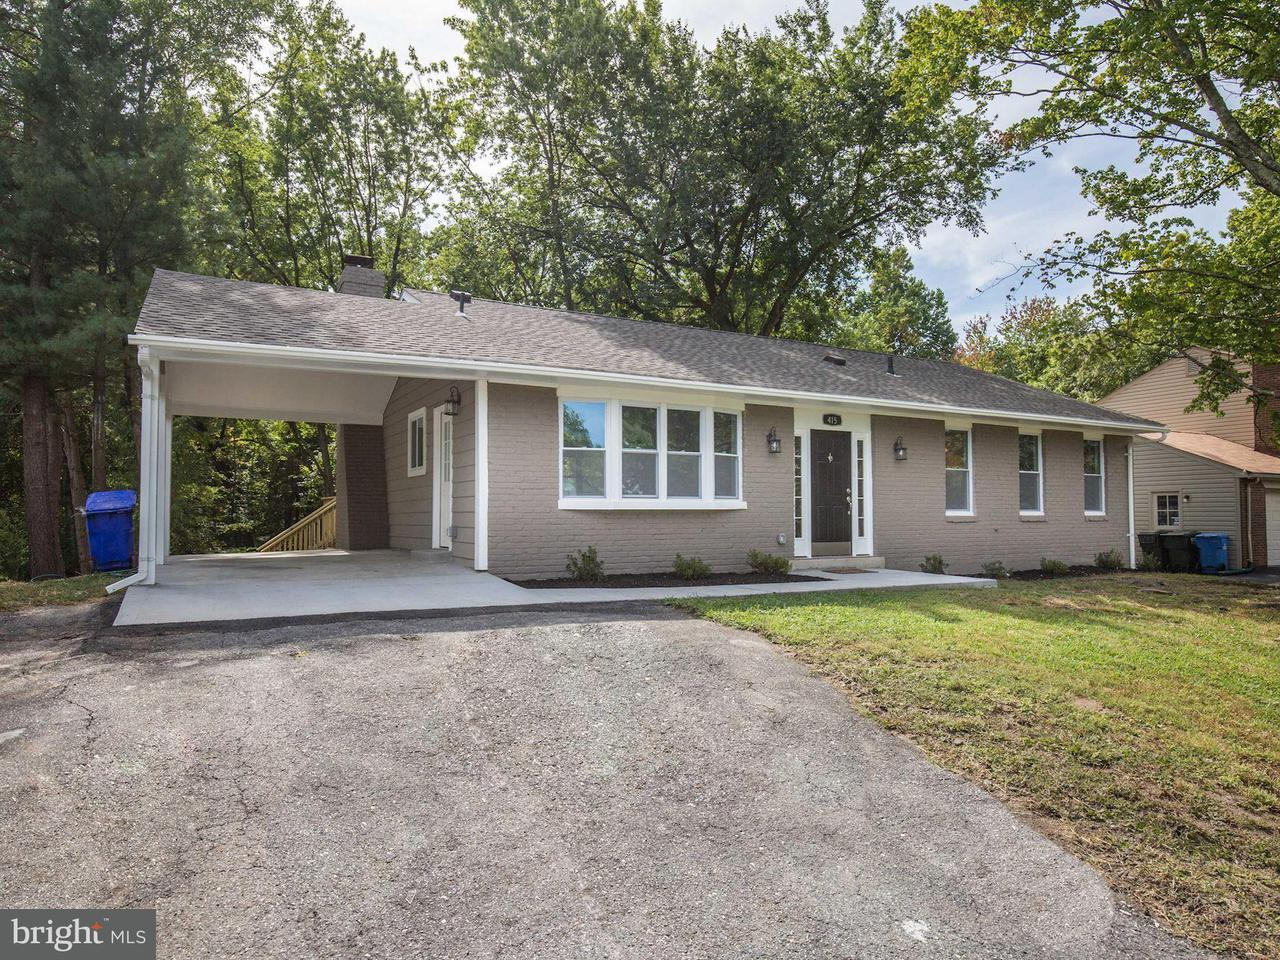 Single Family Home for Sale at 415 PIPING ROCK Drive 415 PIPING ROCK Drive Silver Spring, Maryland 20905 United States